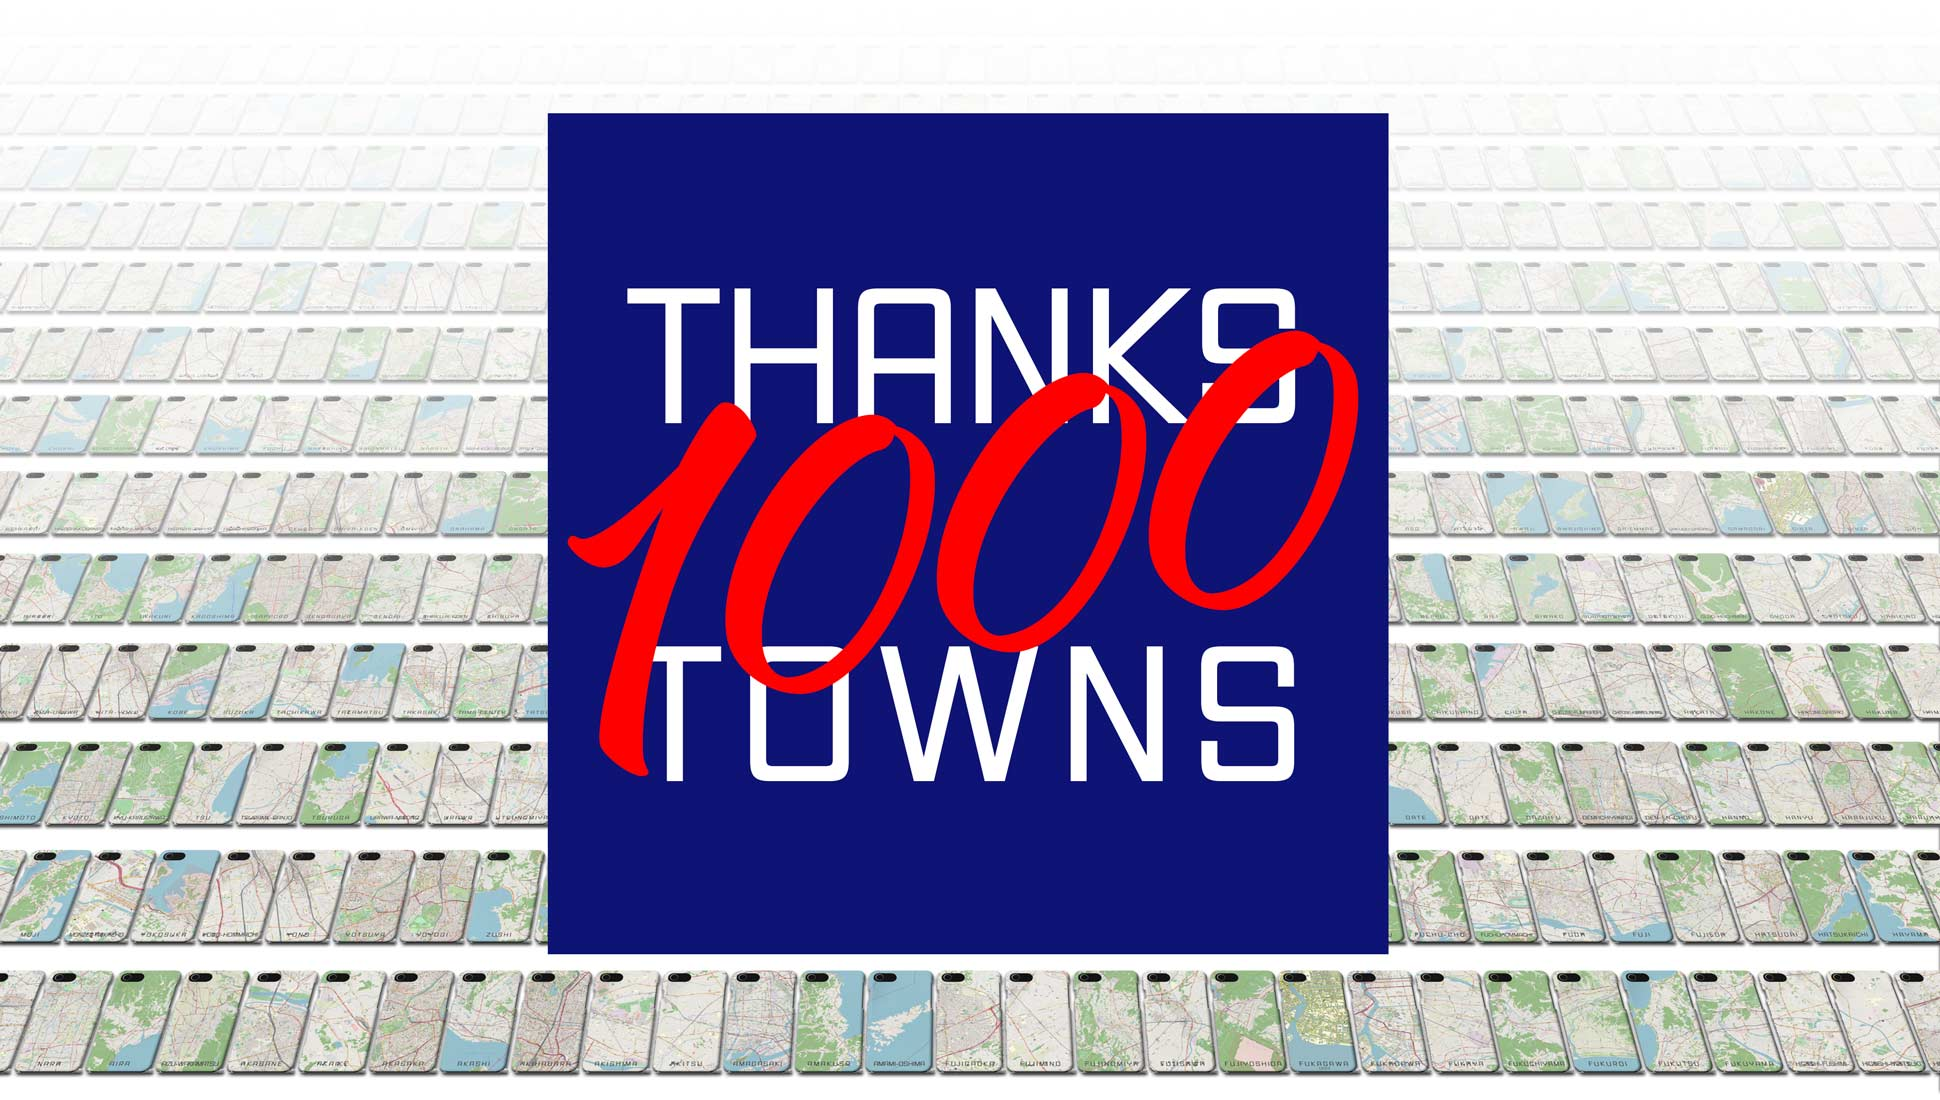 Thanks 1000 Towns